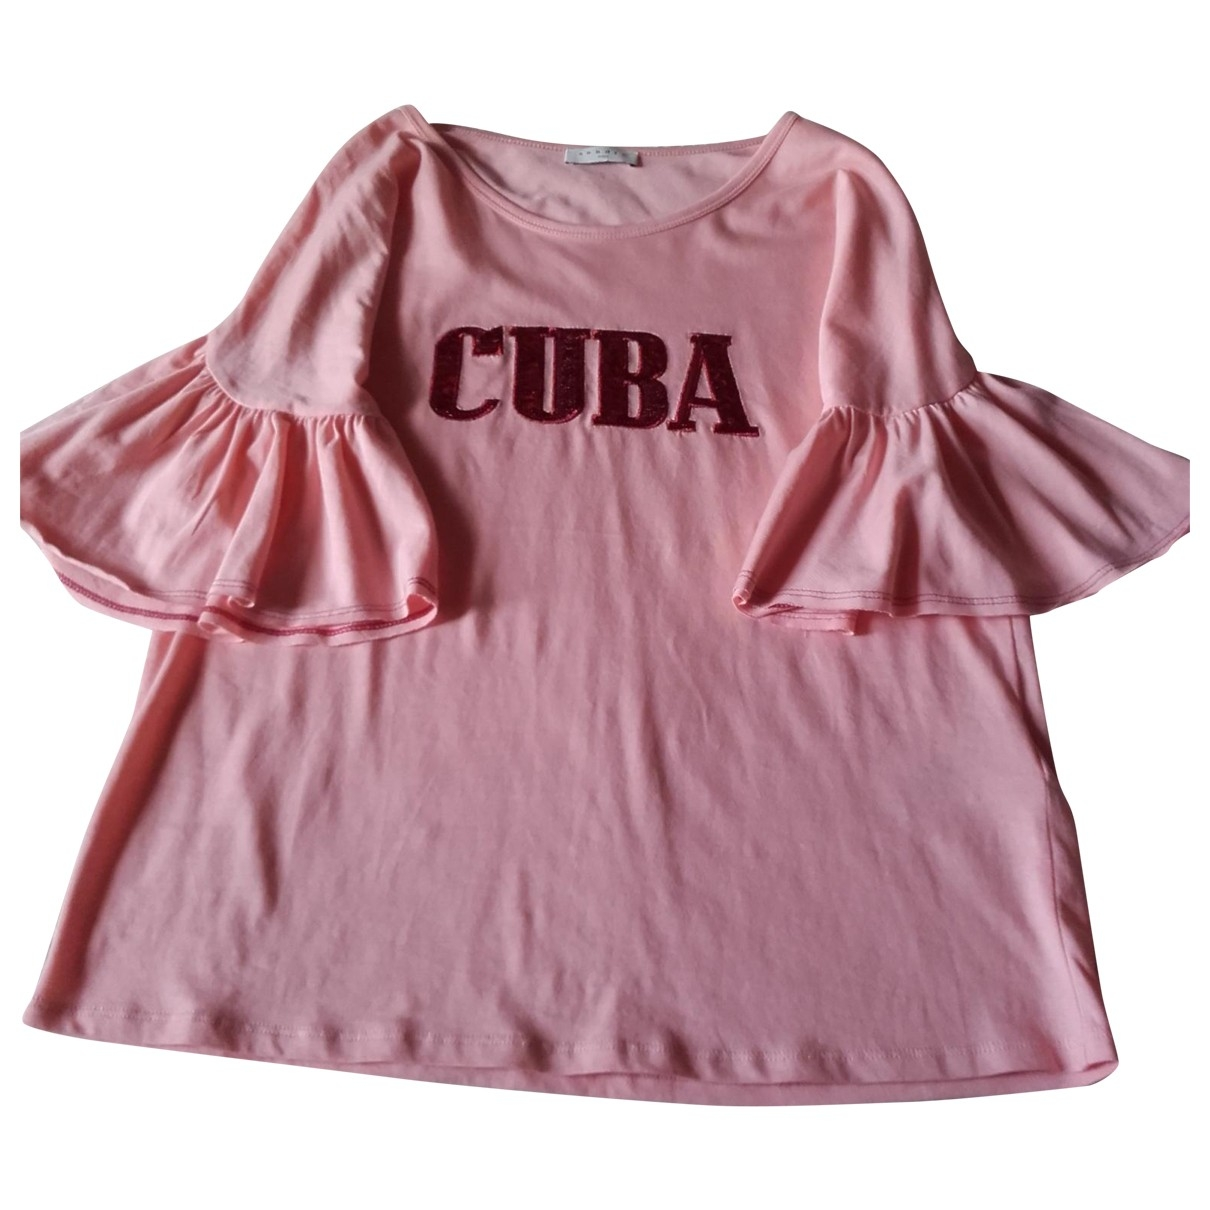 Sandro \N Pink Cotton  top for Women 38 FR